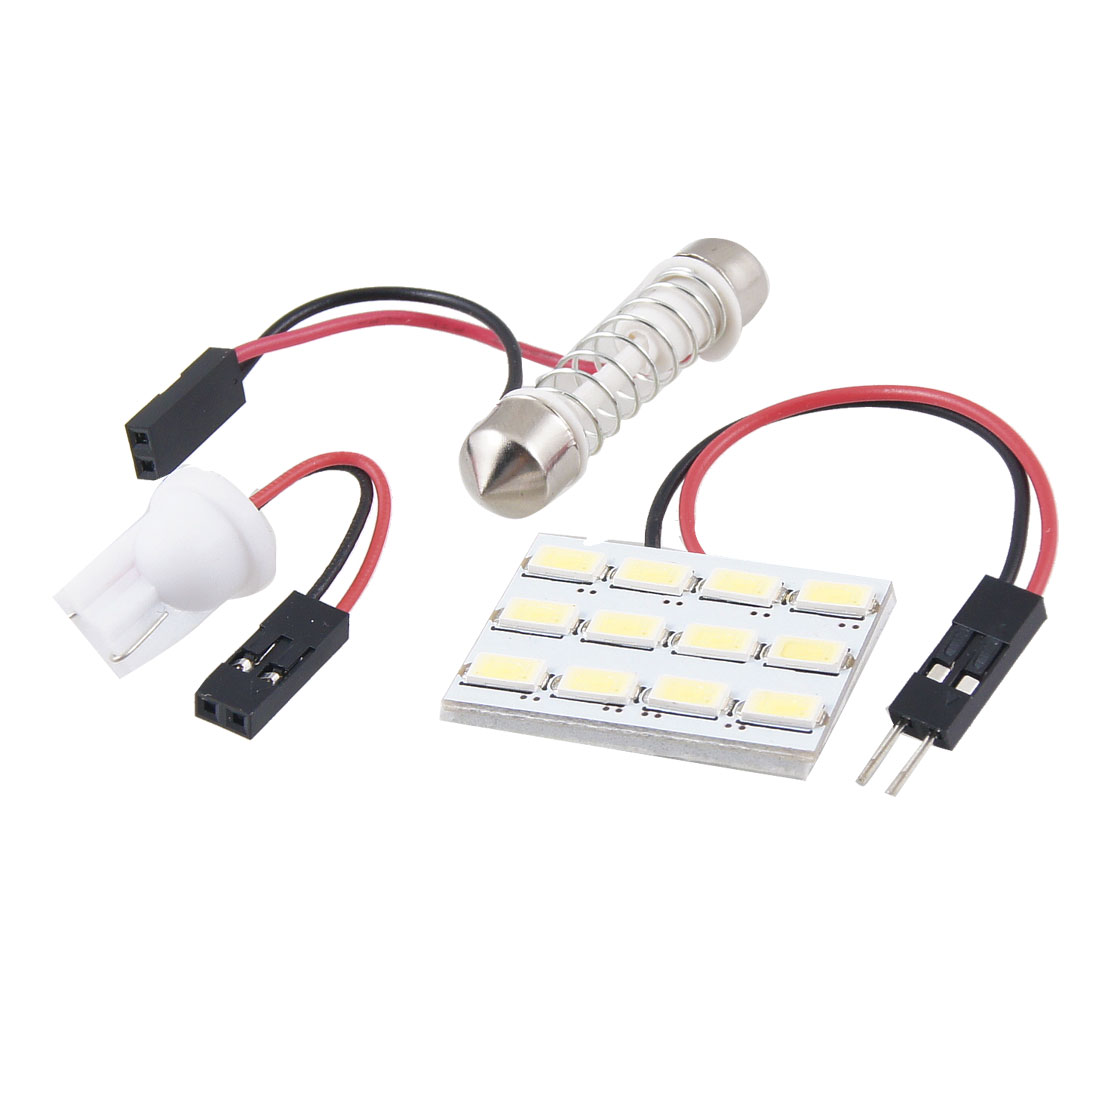 DC 12V White 5630 SMD 12 LED T10 Festoon Car Roof Dome Light Lamp Bulb